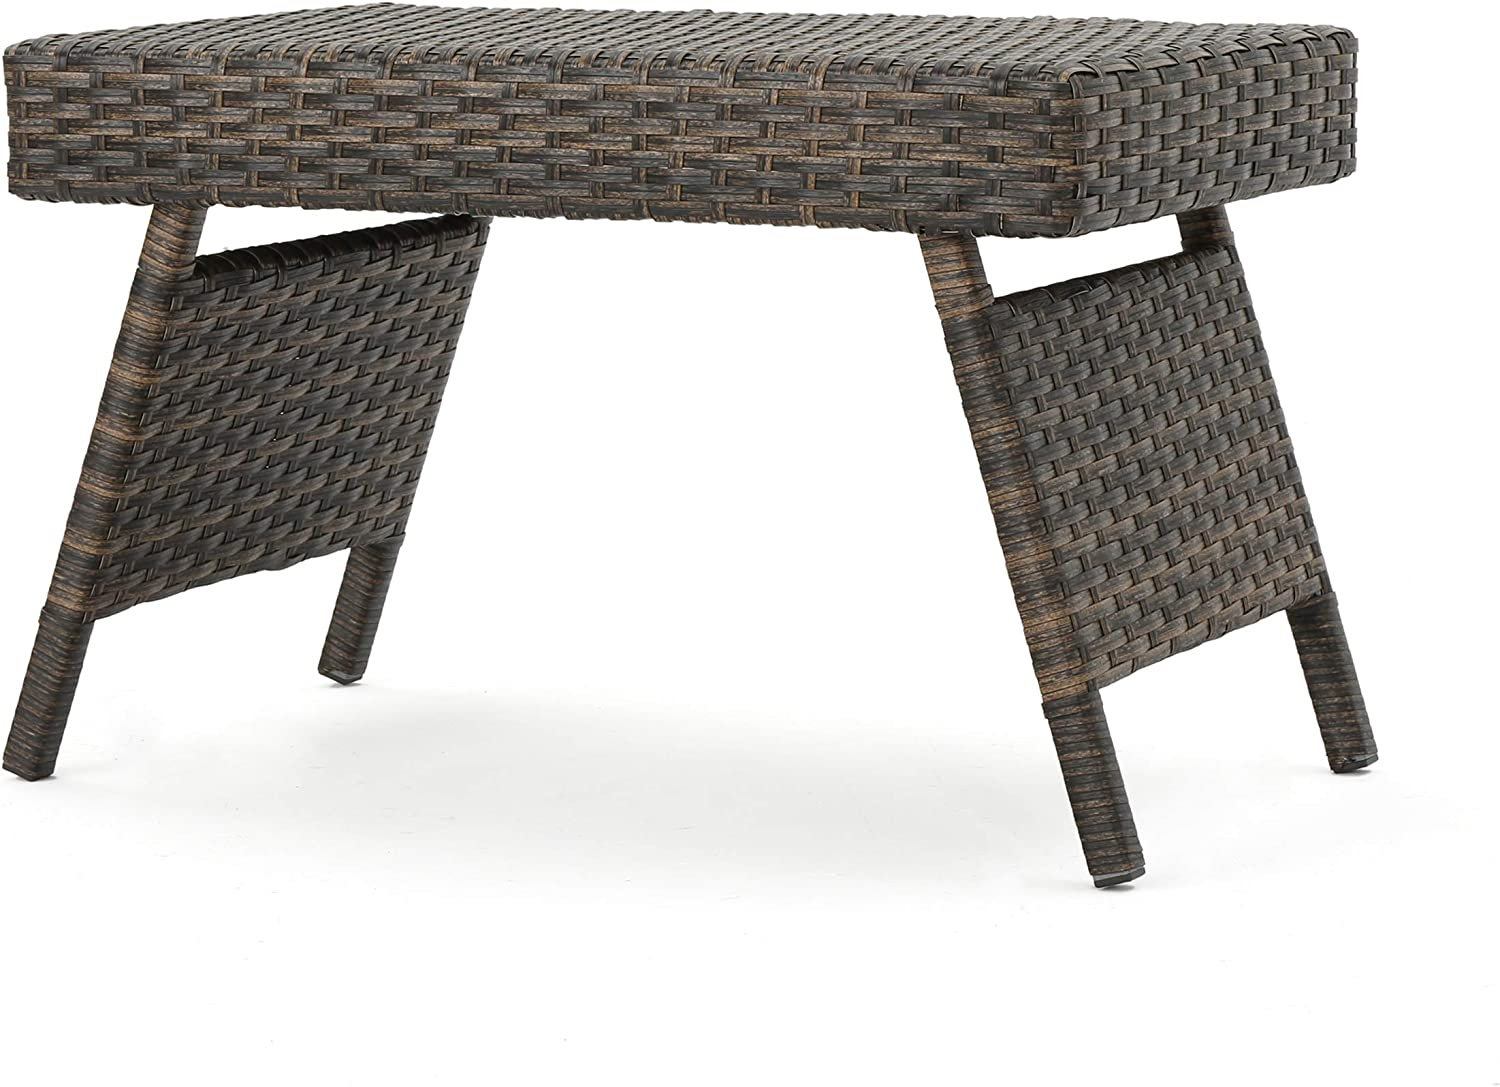 Christopher Knight Home Thira Outdoor Wicker End Table with Aluminum Frame, Mix Mocha